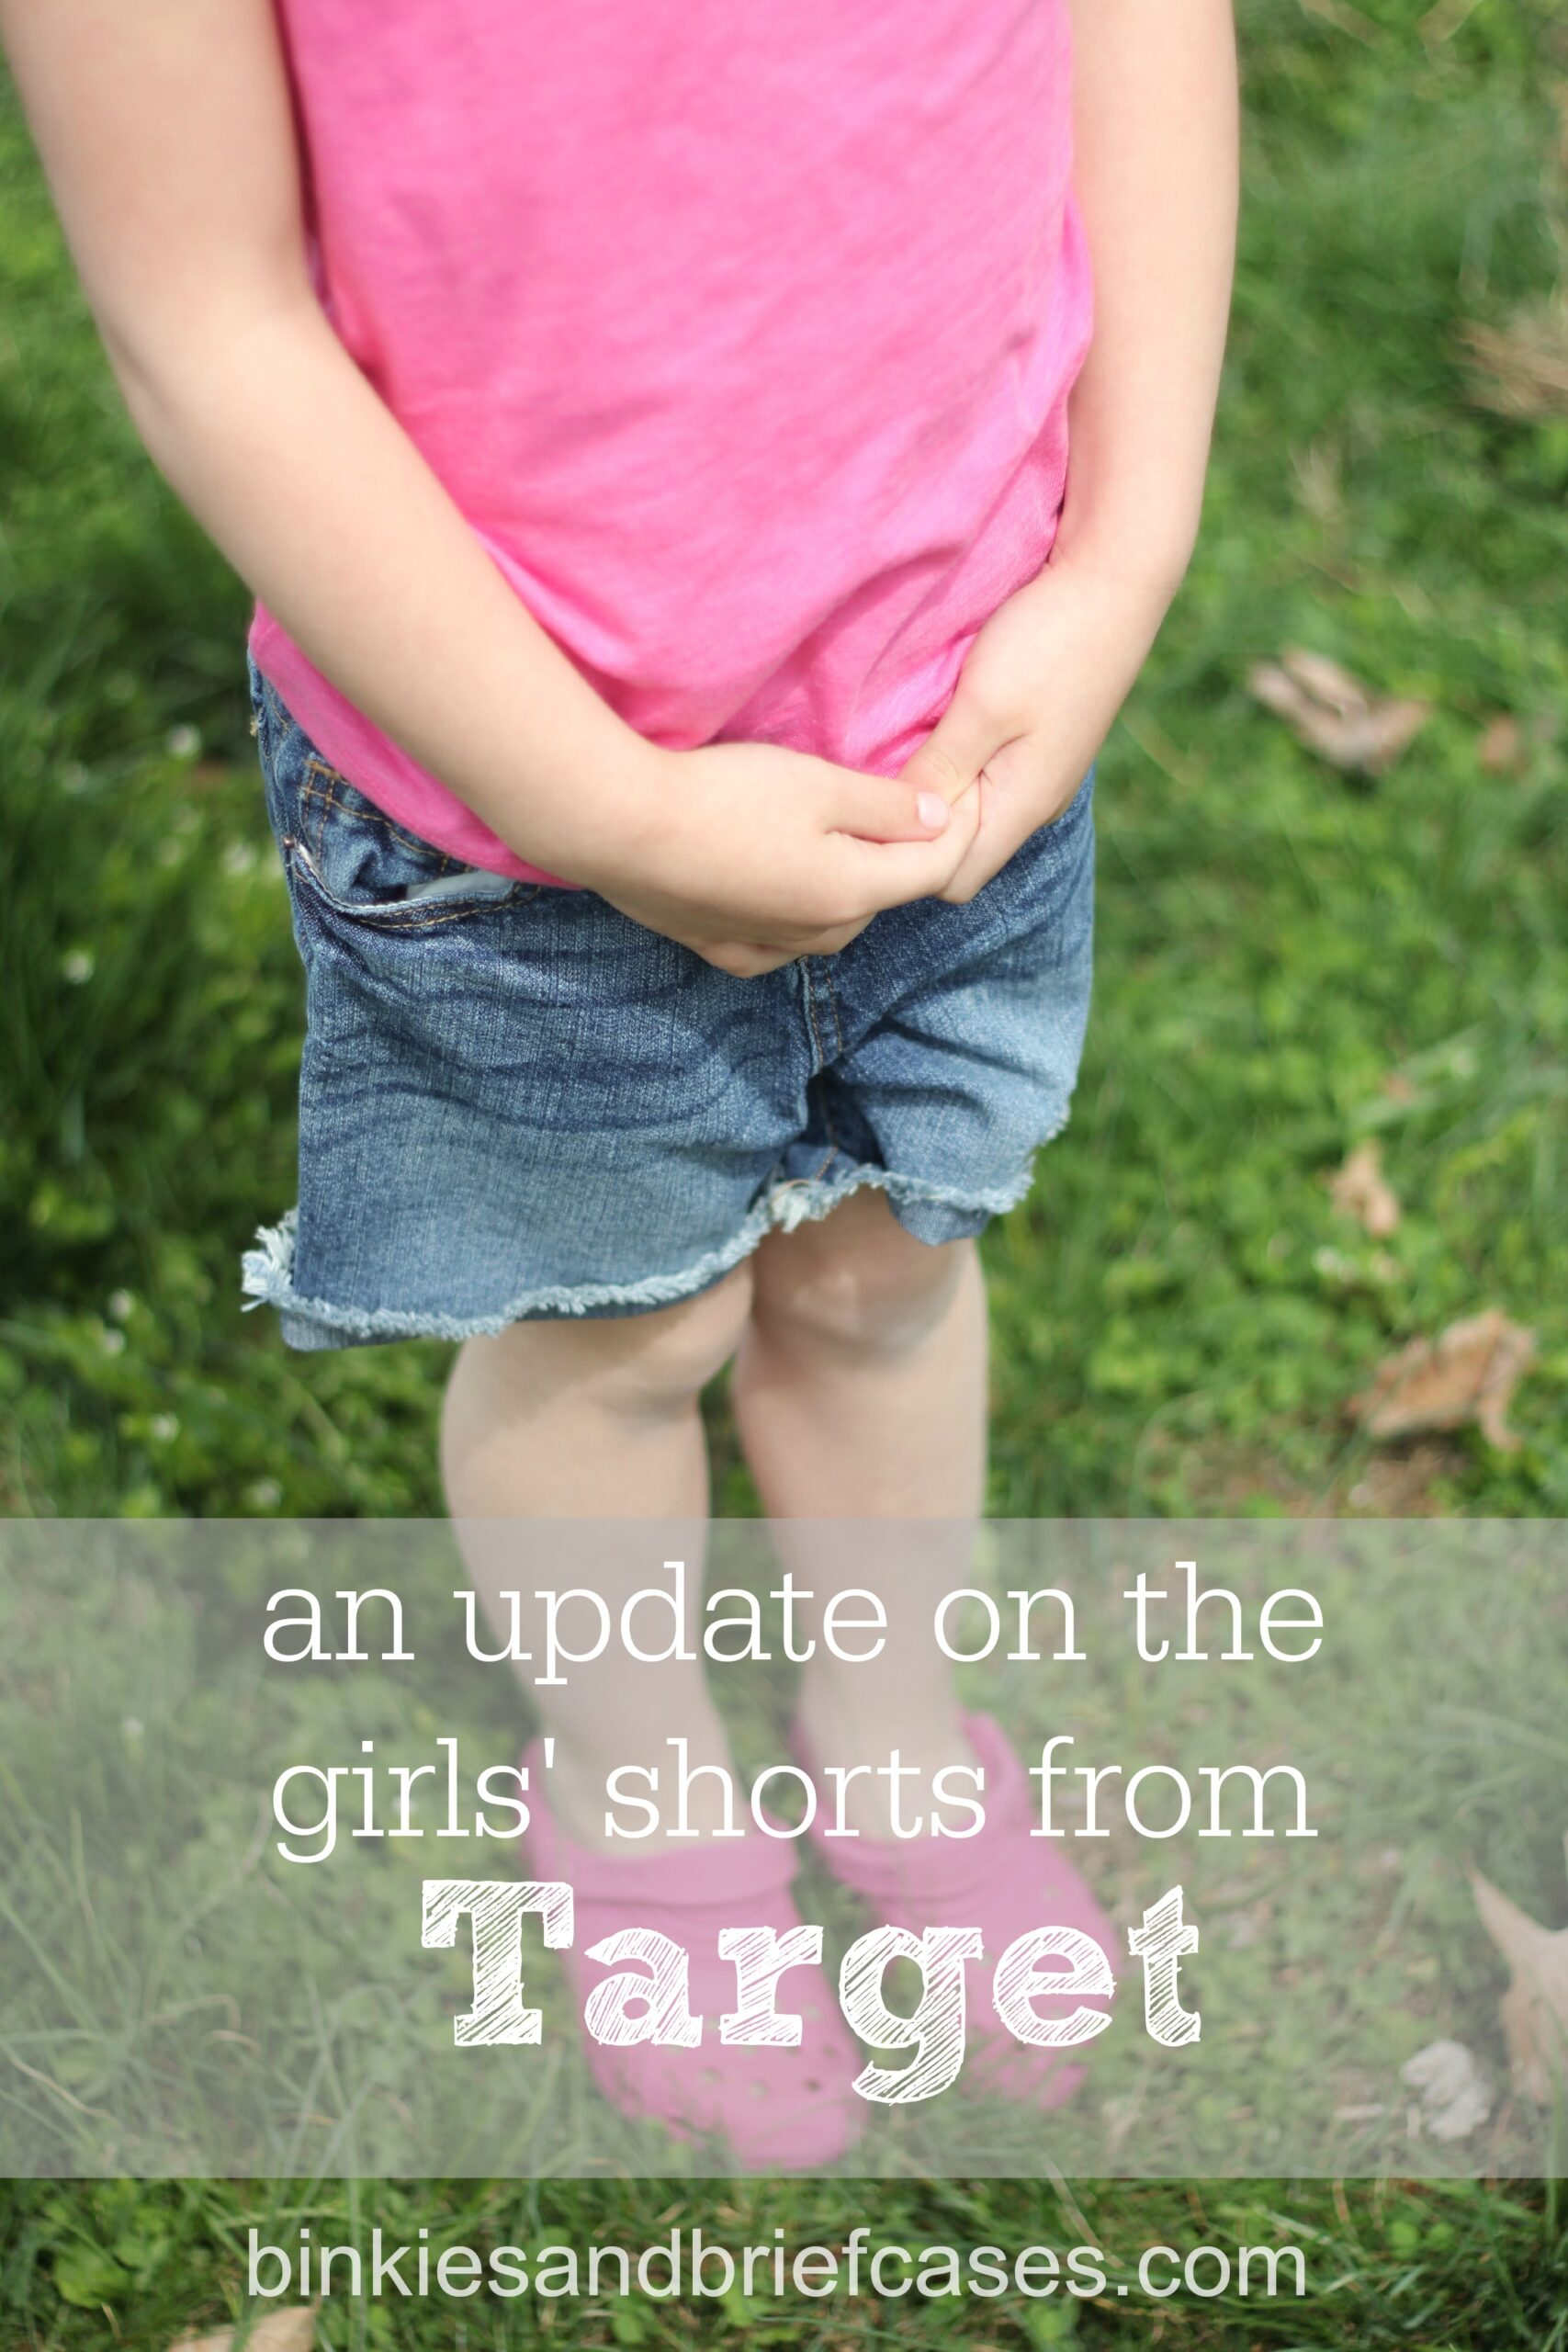 An update on the girls' shorts from Target